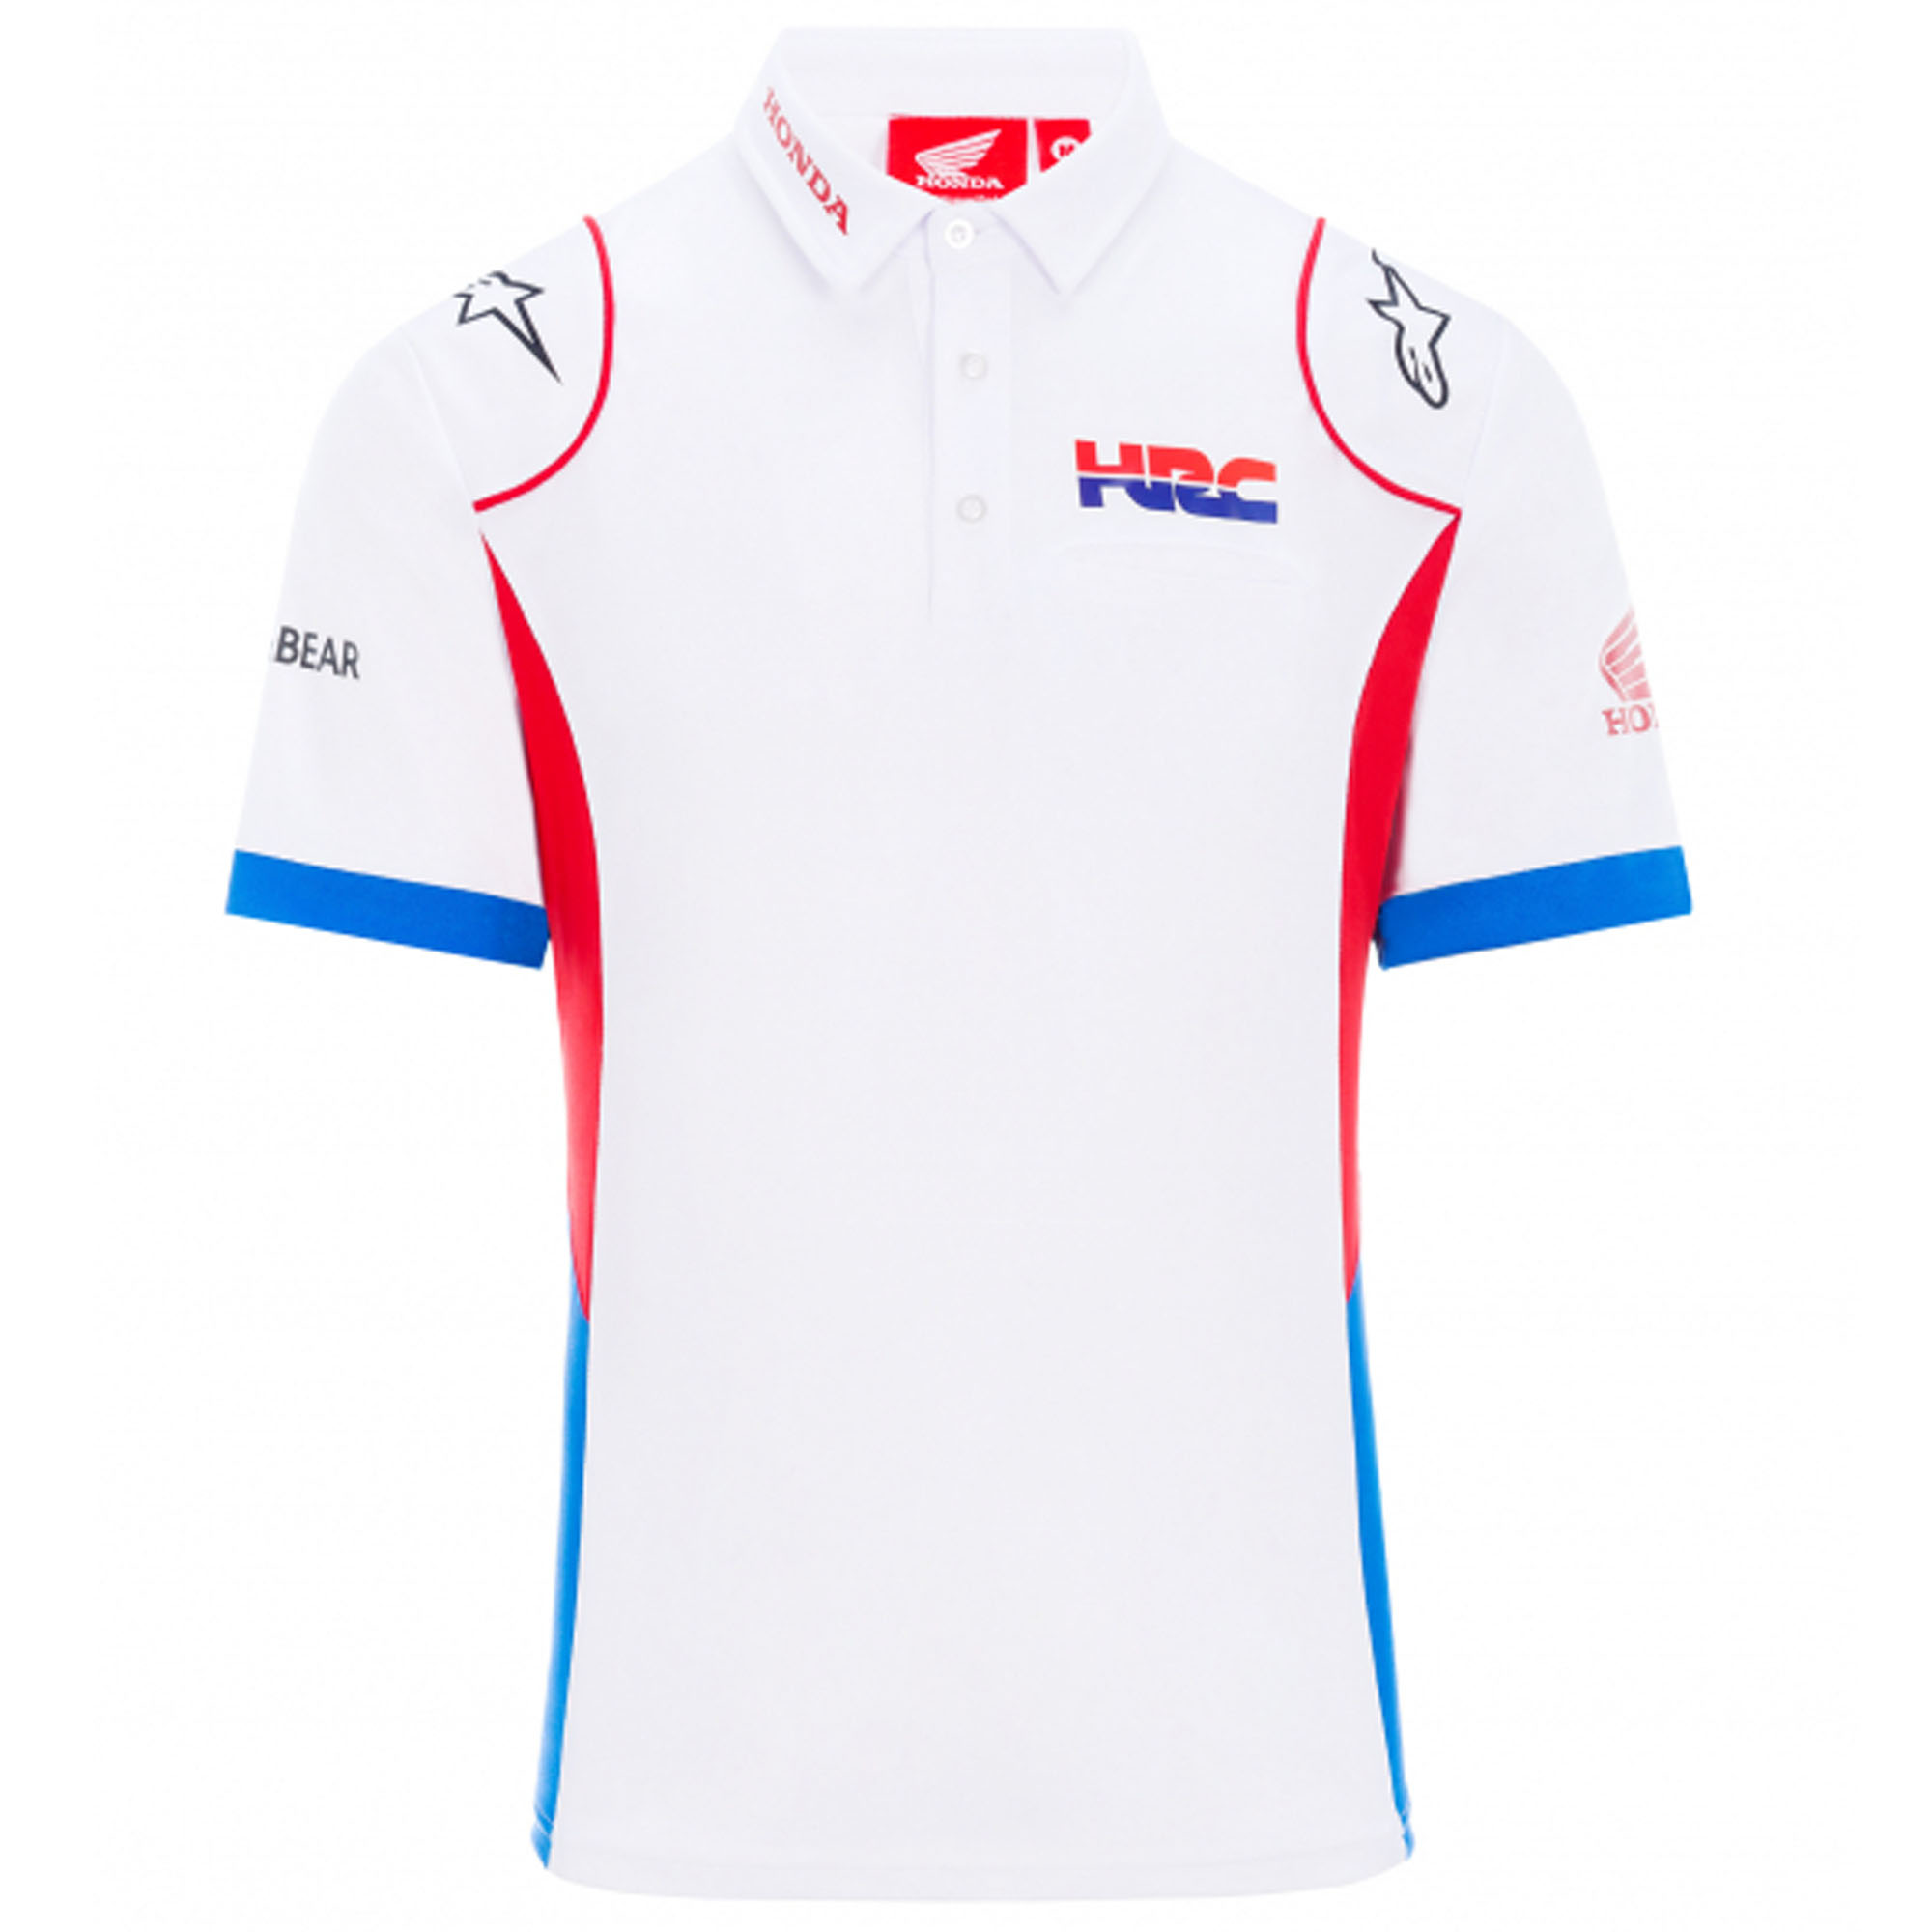 2020 Honda Hrc Replica Team Motogp Mens Polo Shirt White Official Sizes S Xxl Male Tifoso F1 Merchandise F1 Store